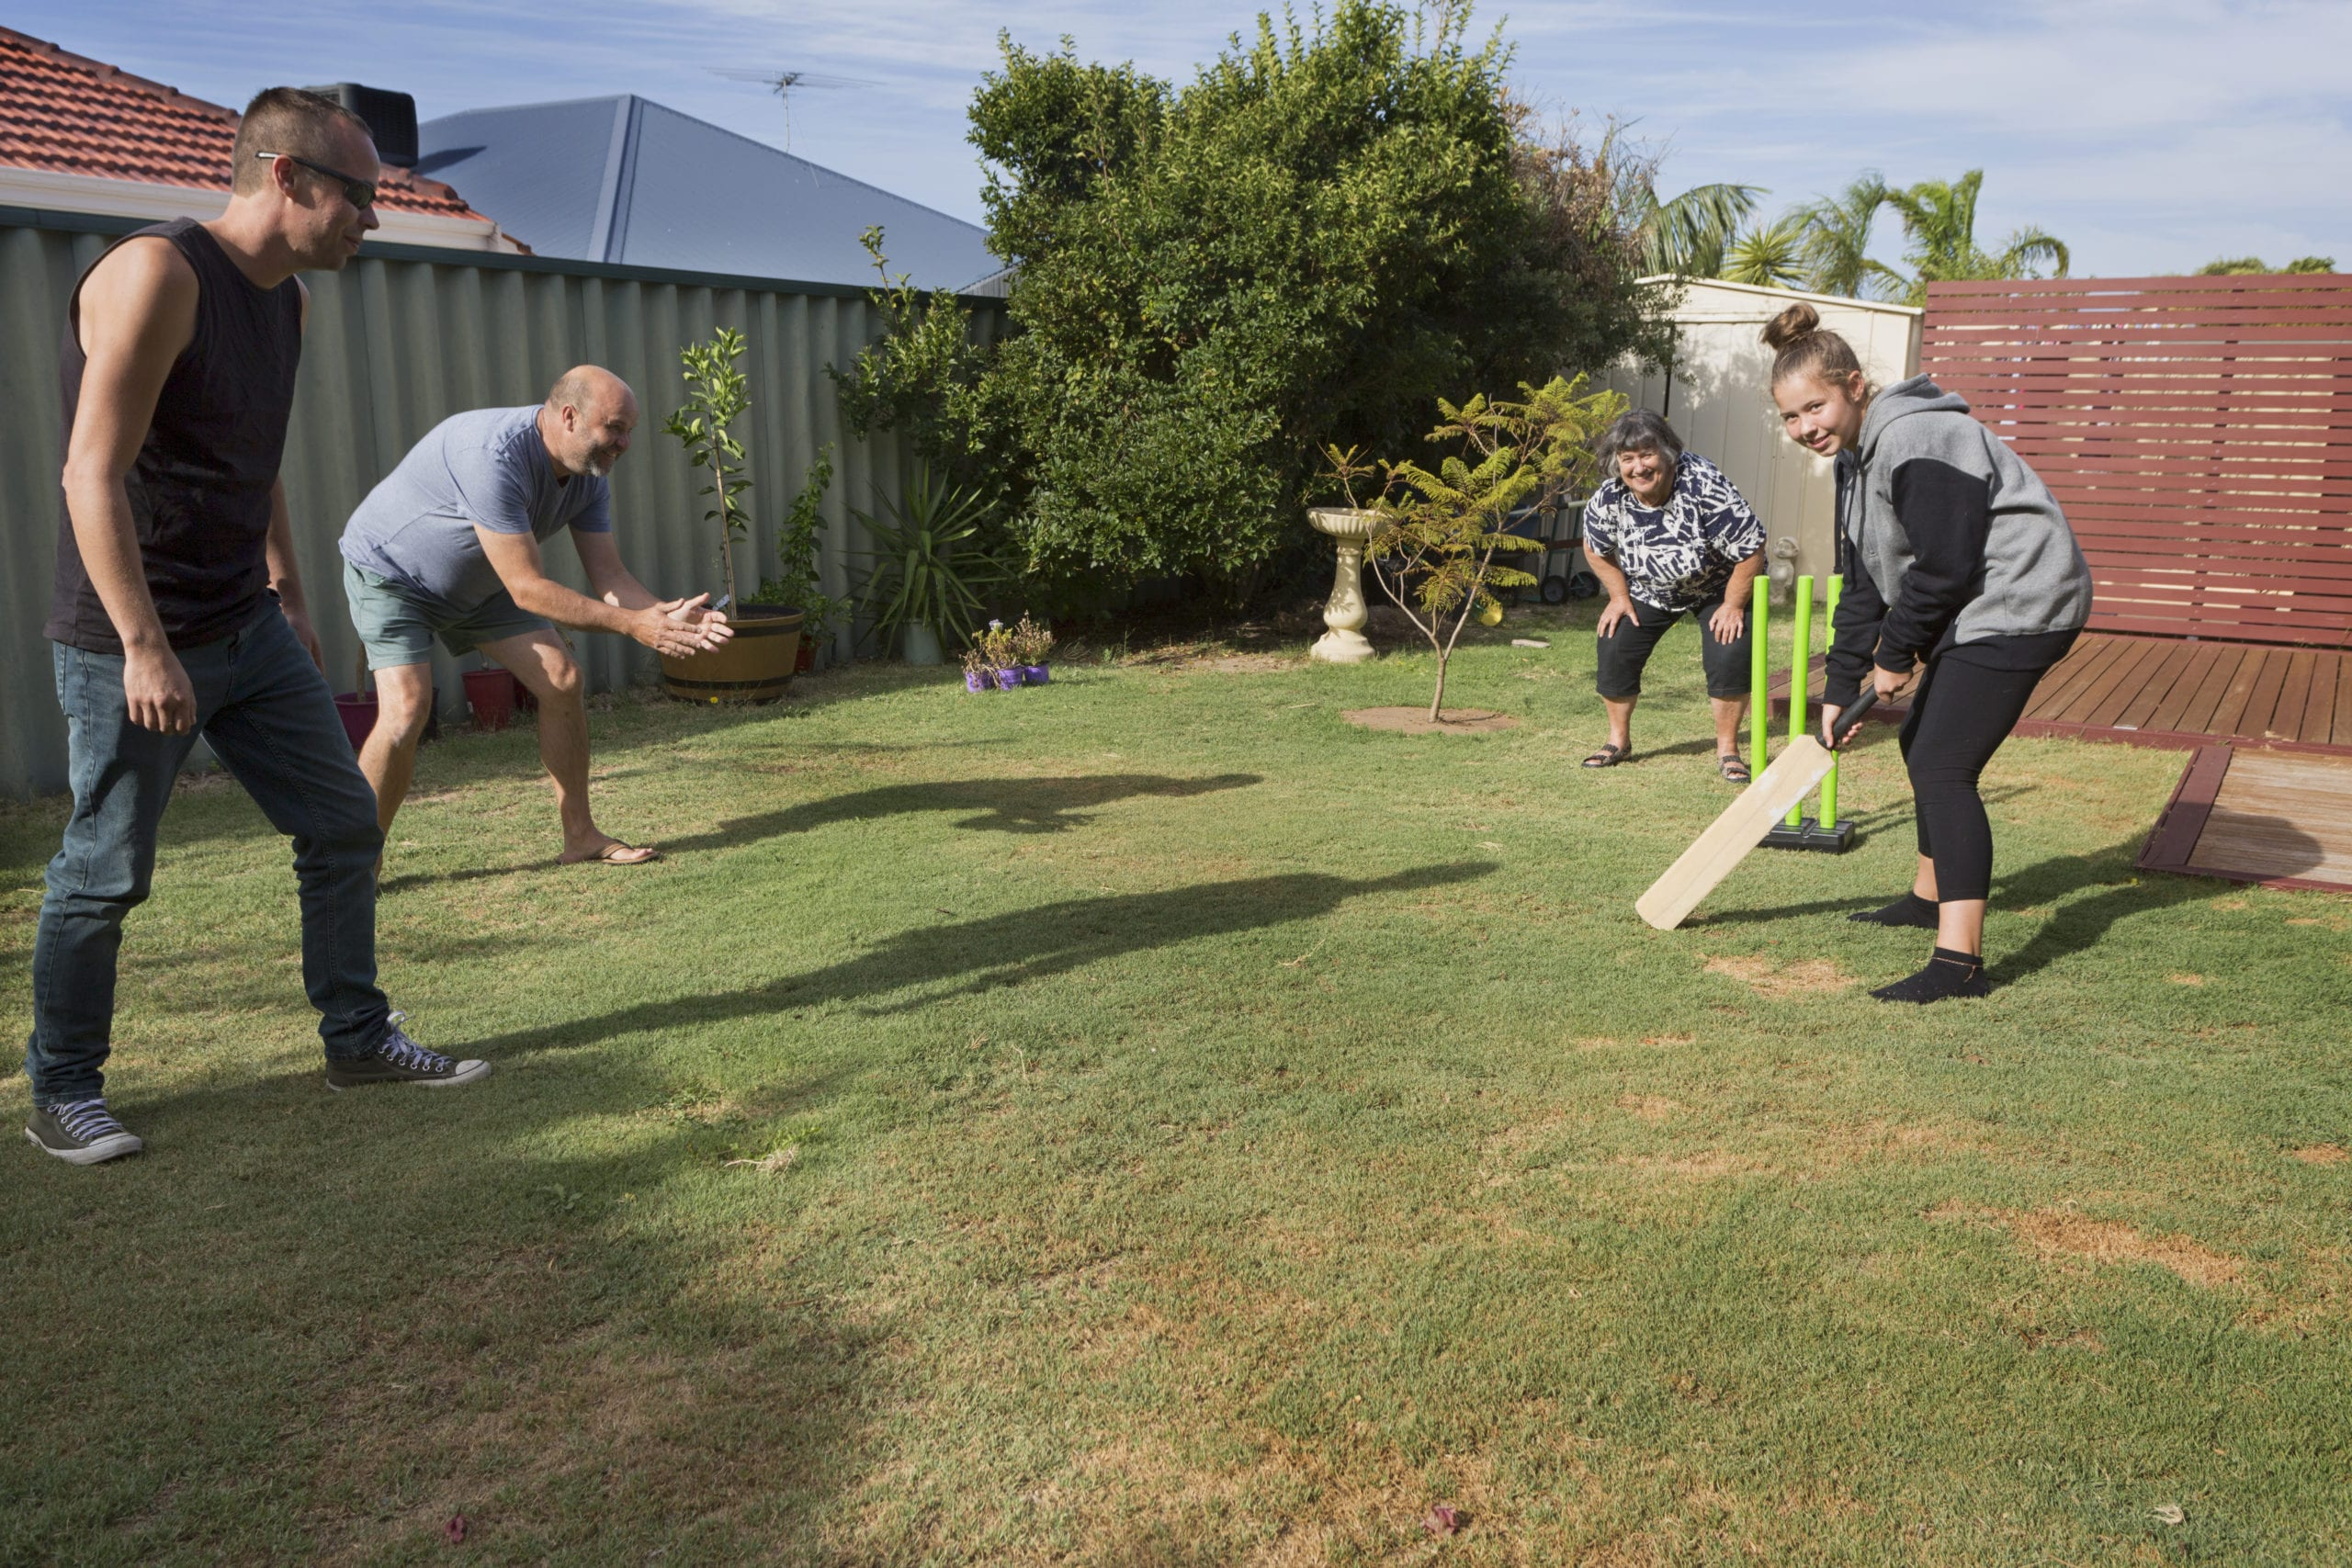 A family playing a traditional game of Back Yard Cricket.